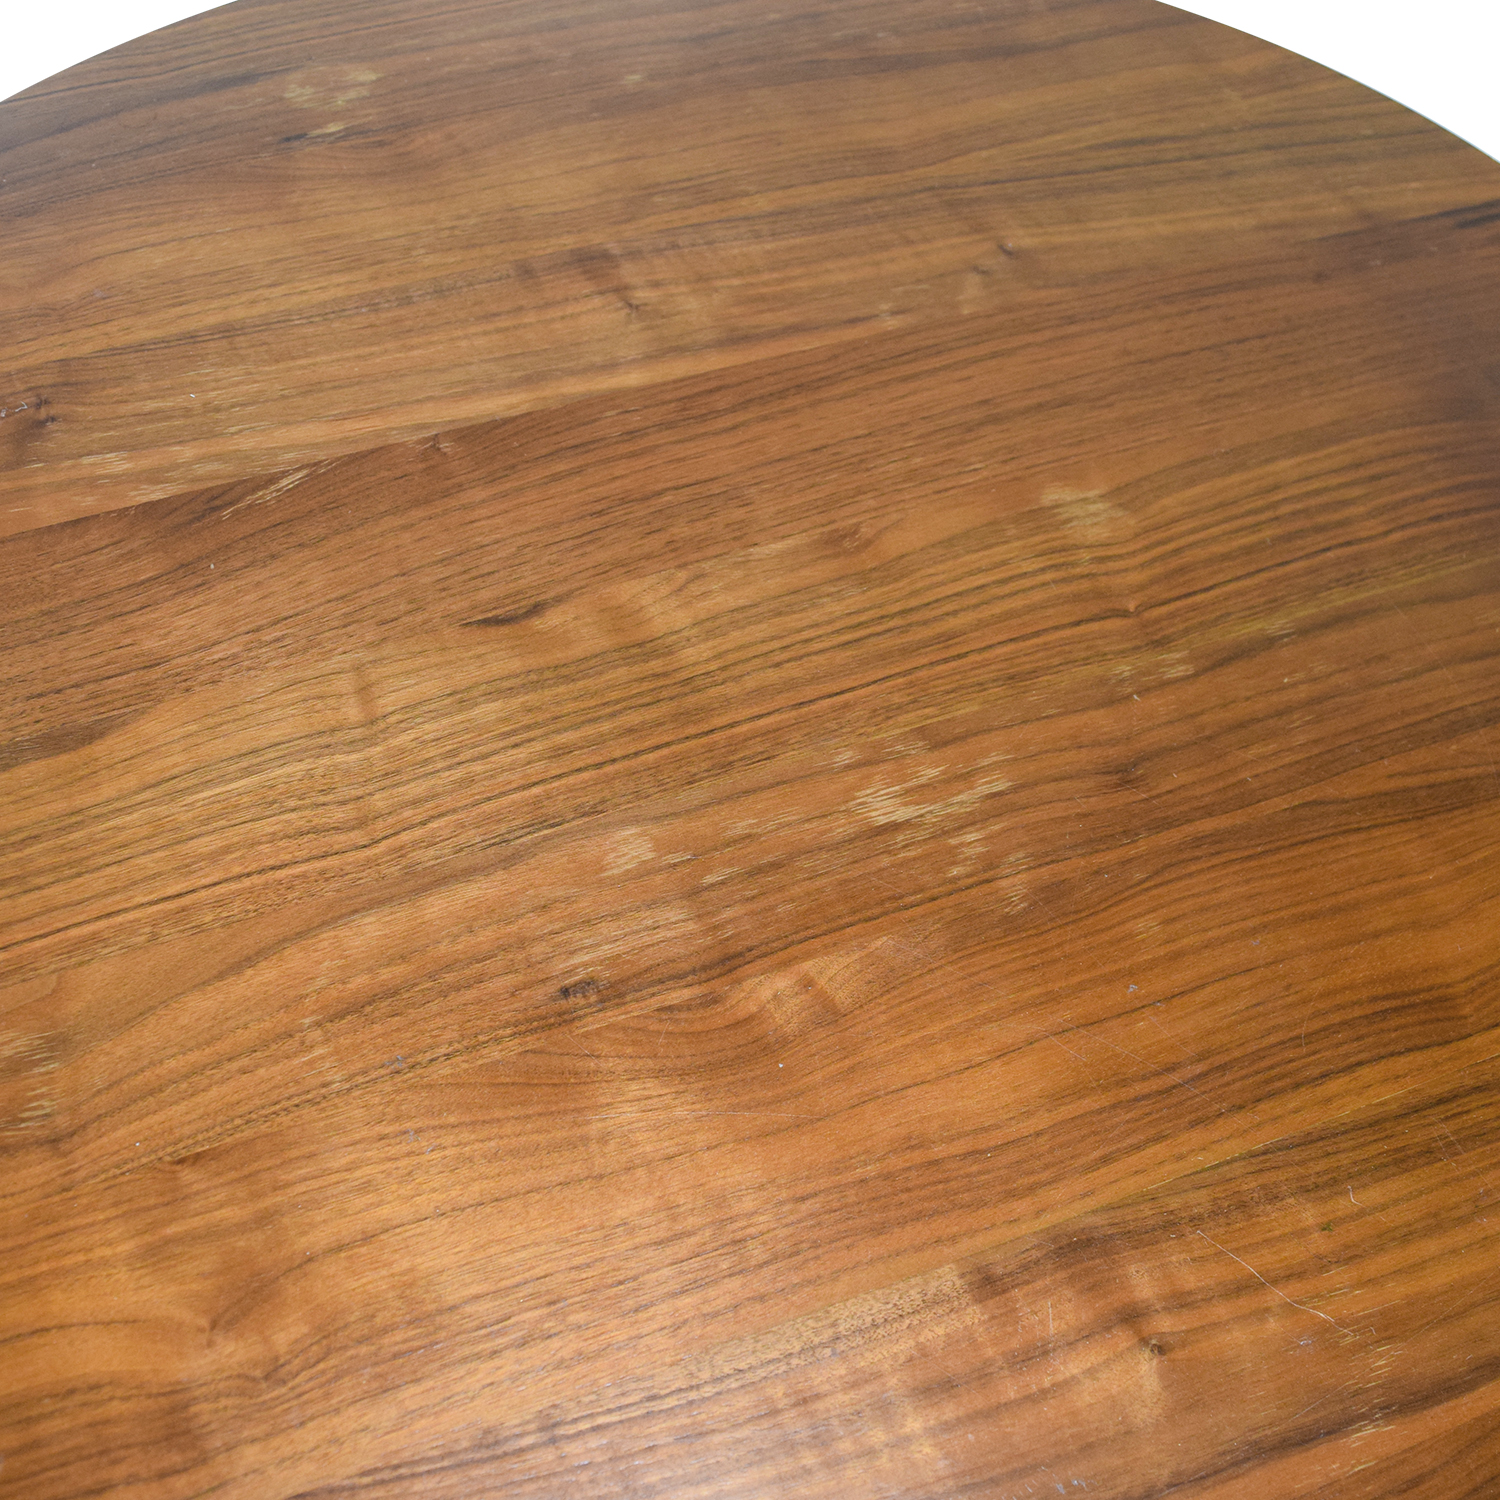 West Elm West Elm Round Wood Dining Table Cherry